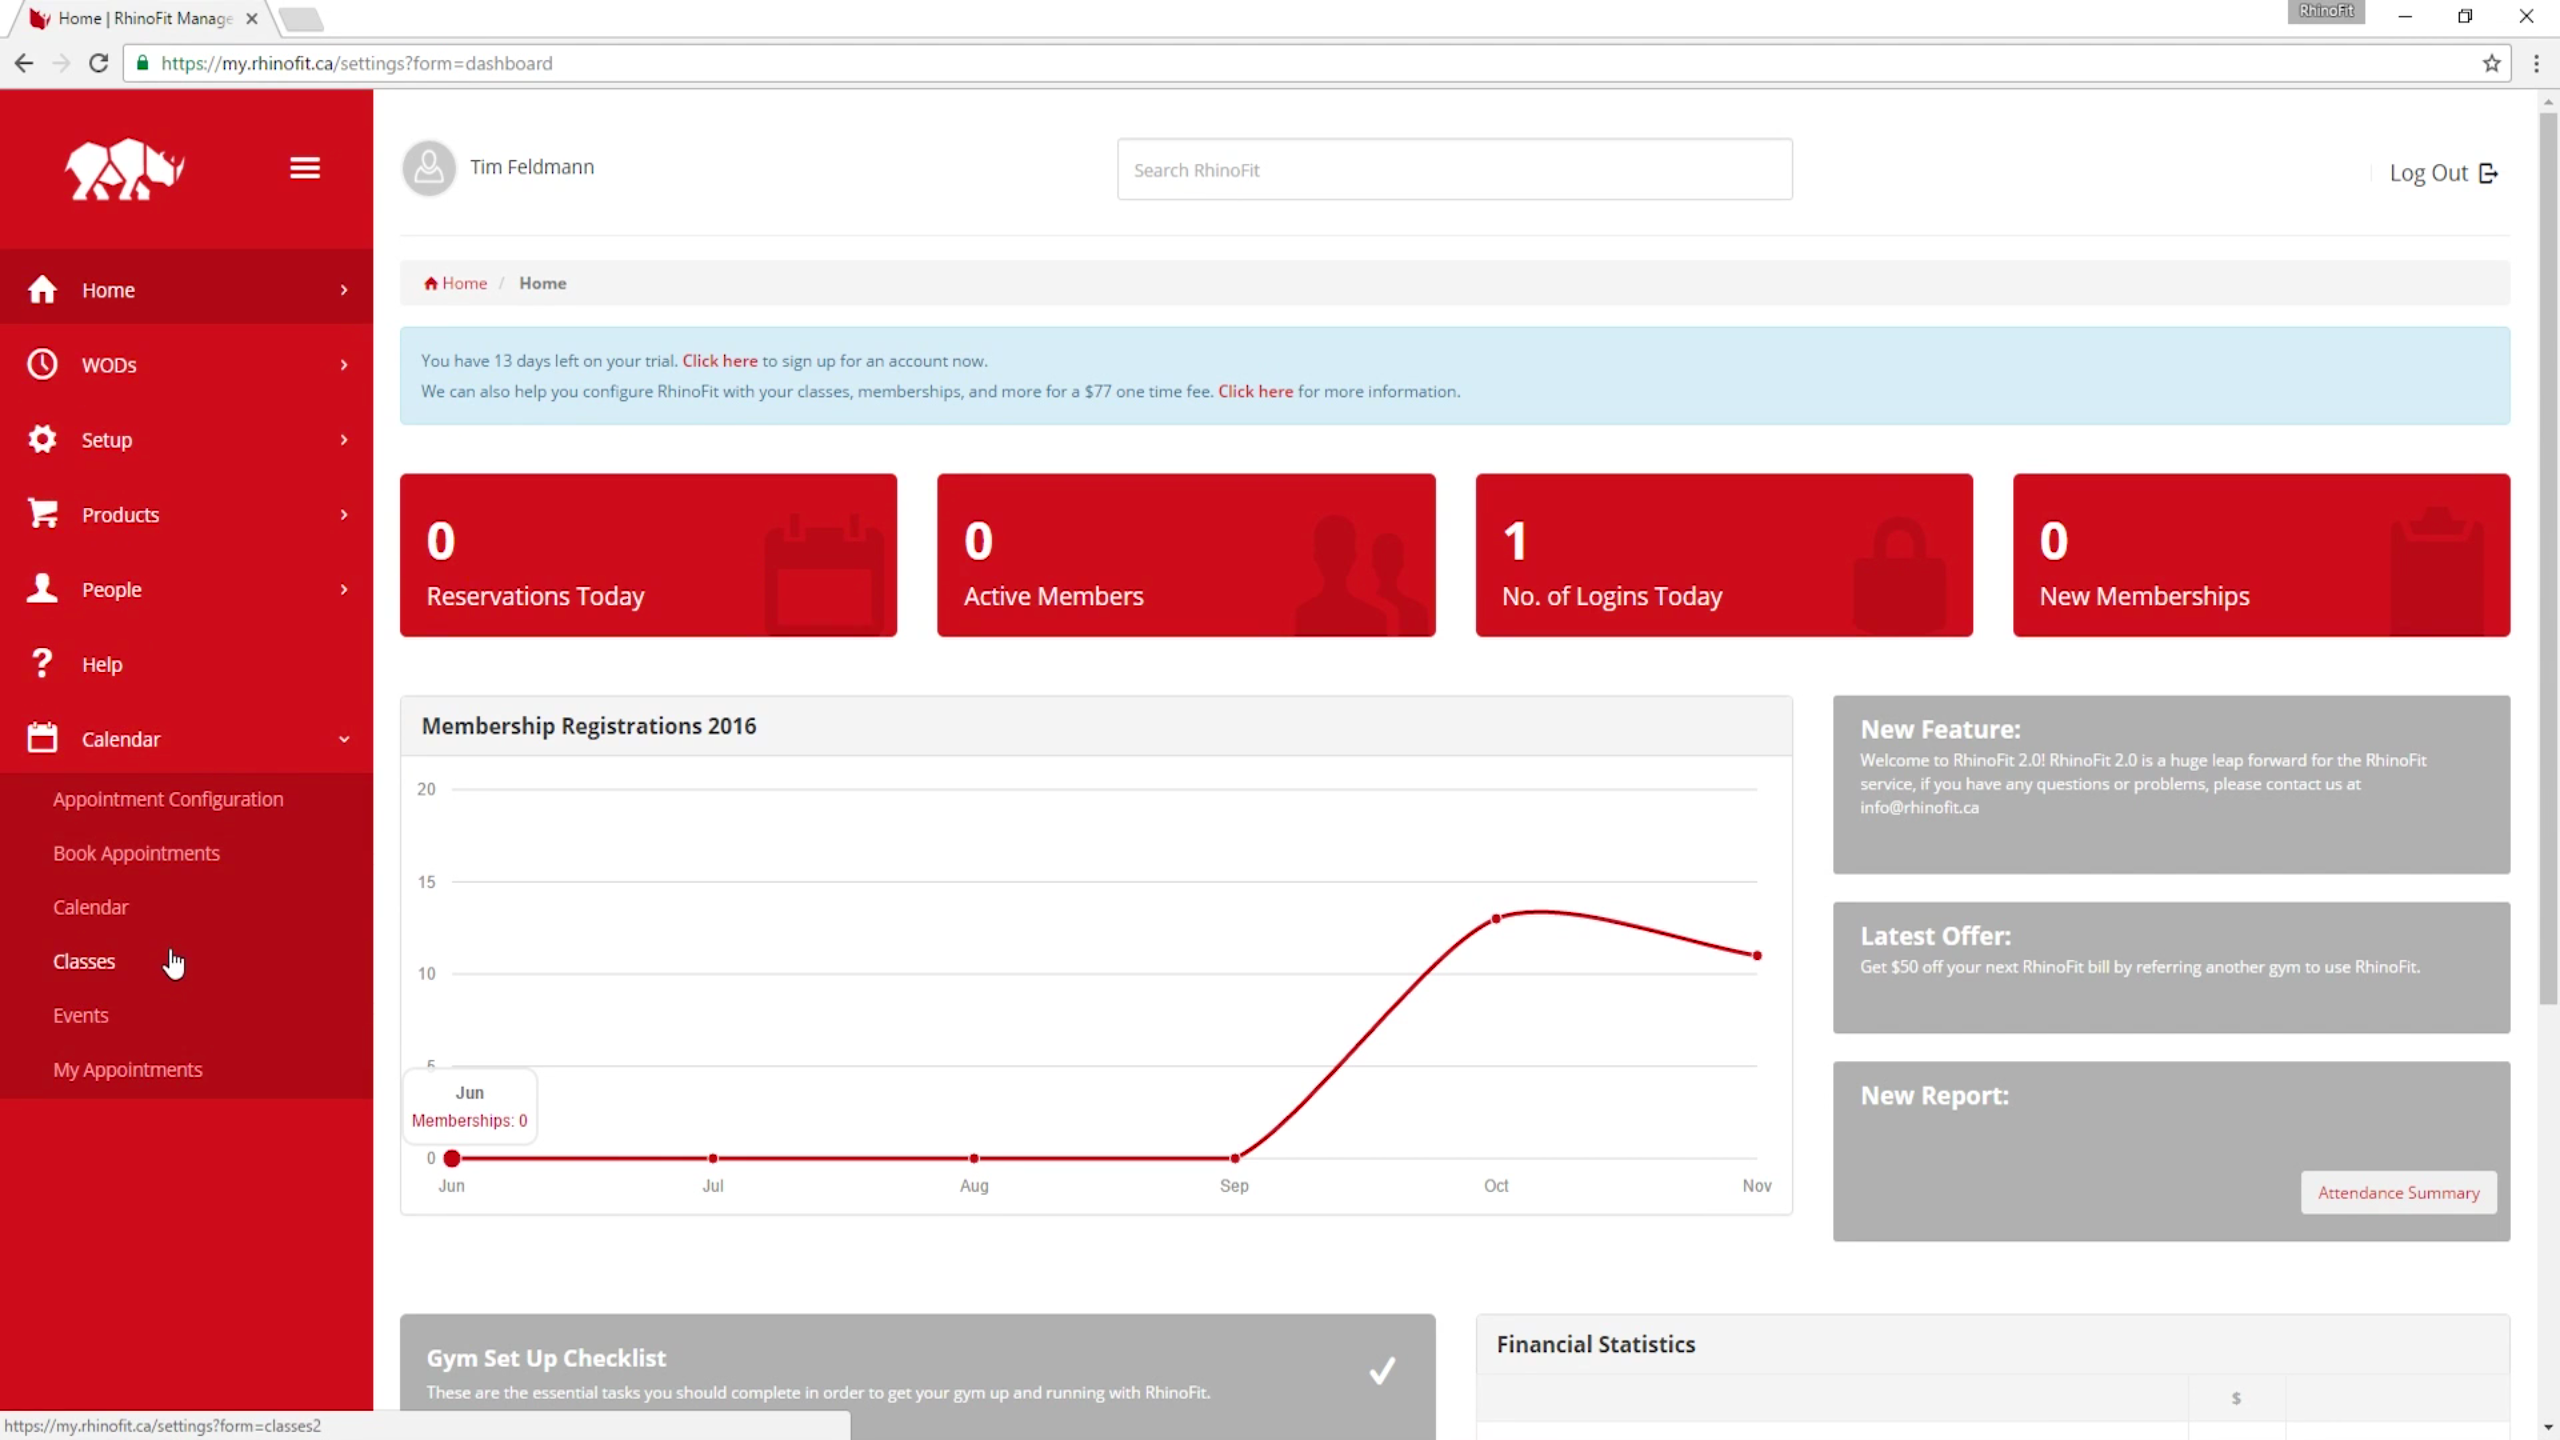 The home dashboard provides easy access to the main functions and a quick view data summary of key business data